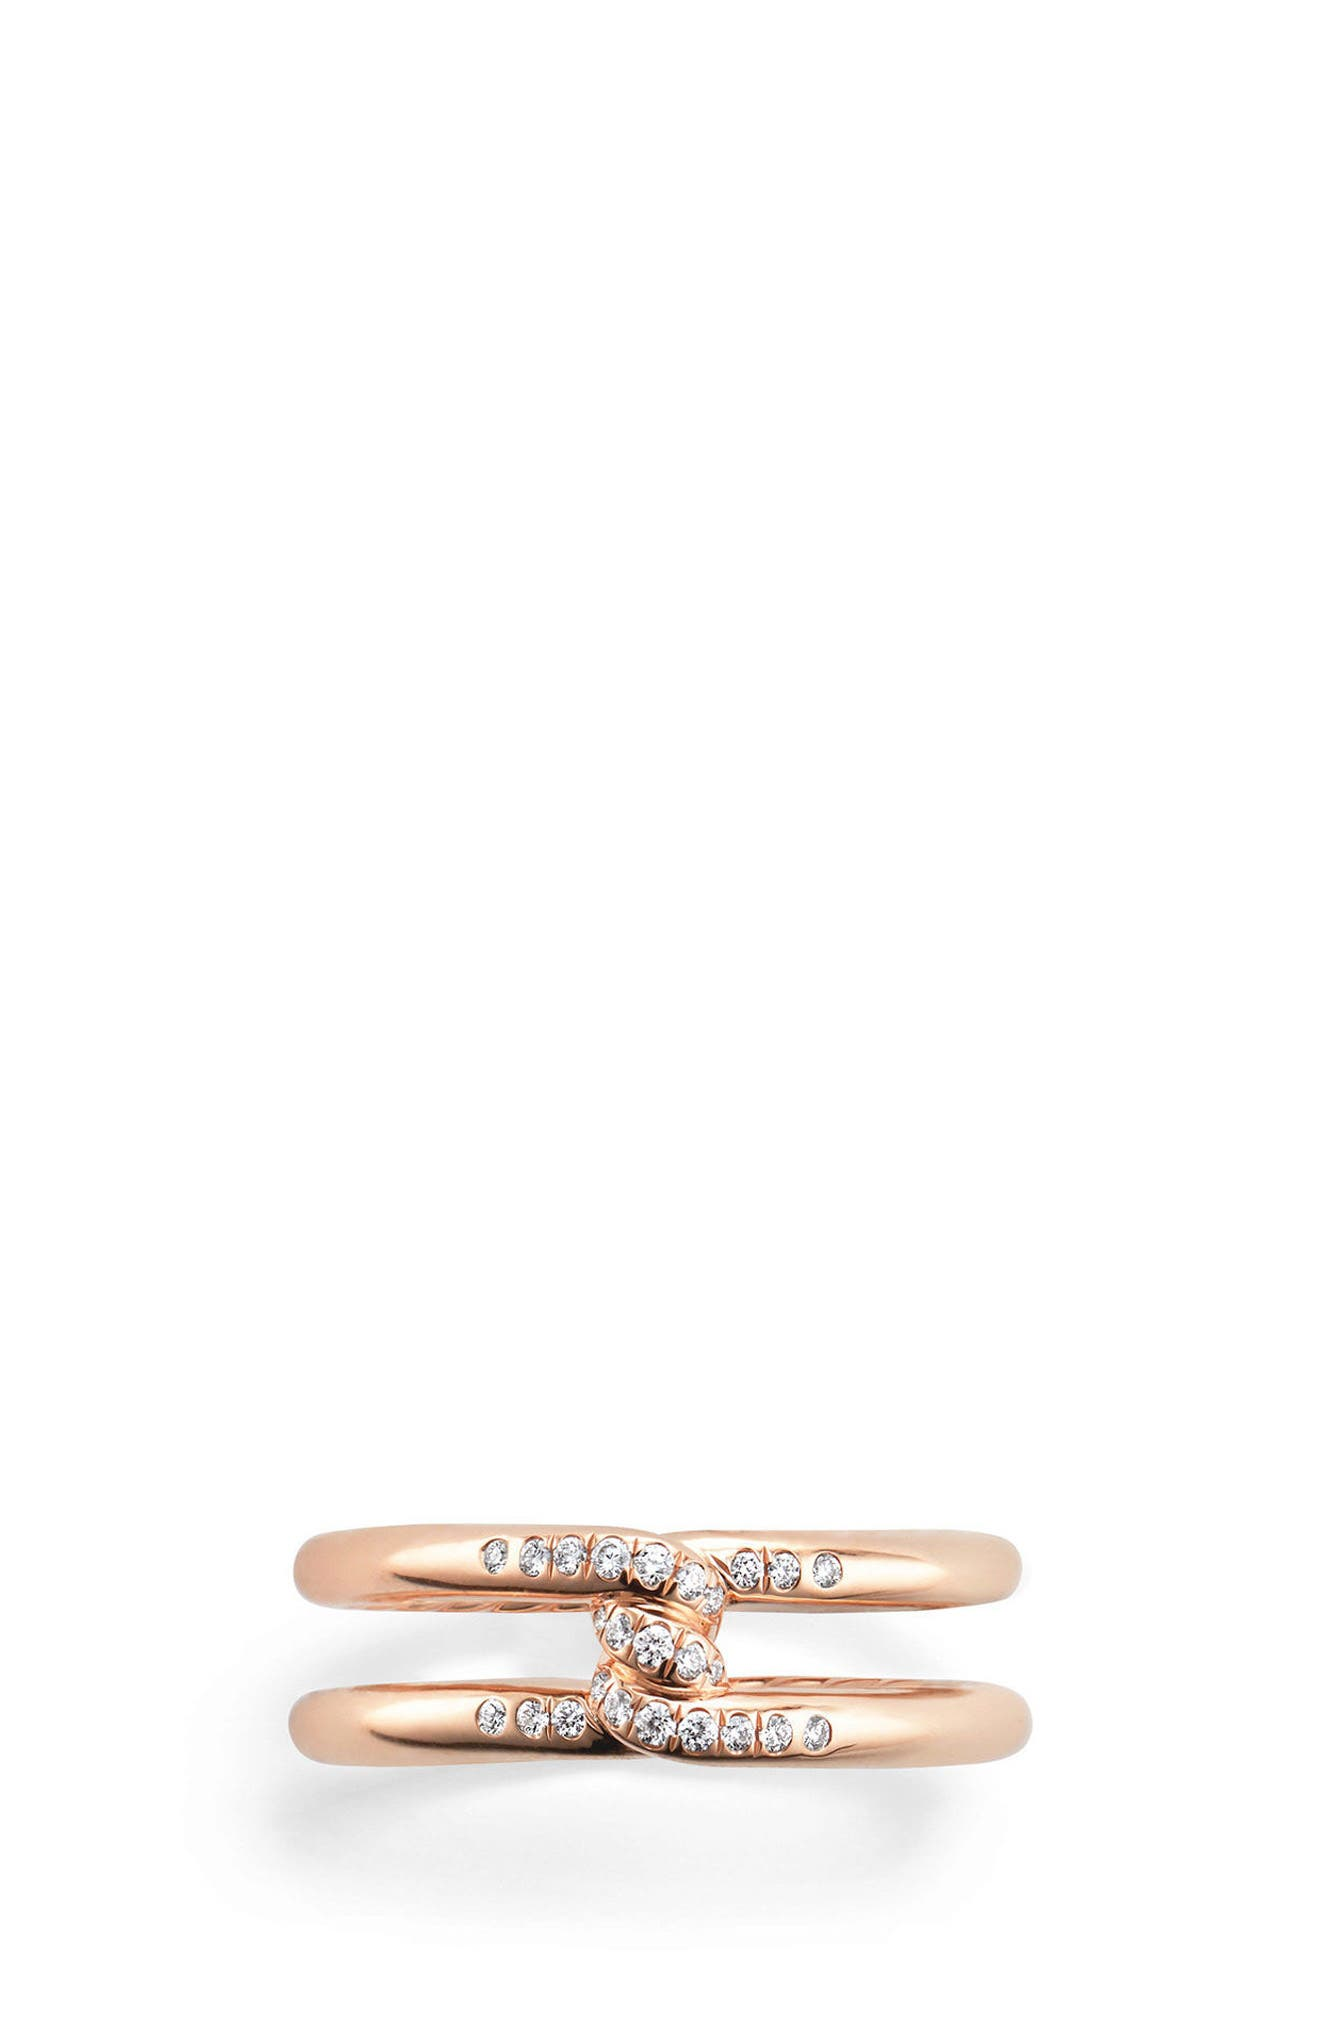 Continuance Band Ring with Diamonds in 18k Gold, 6.5mm,                             Main thumbnail 1, color,                             ROSE GOLD